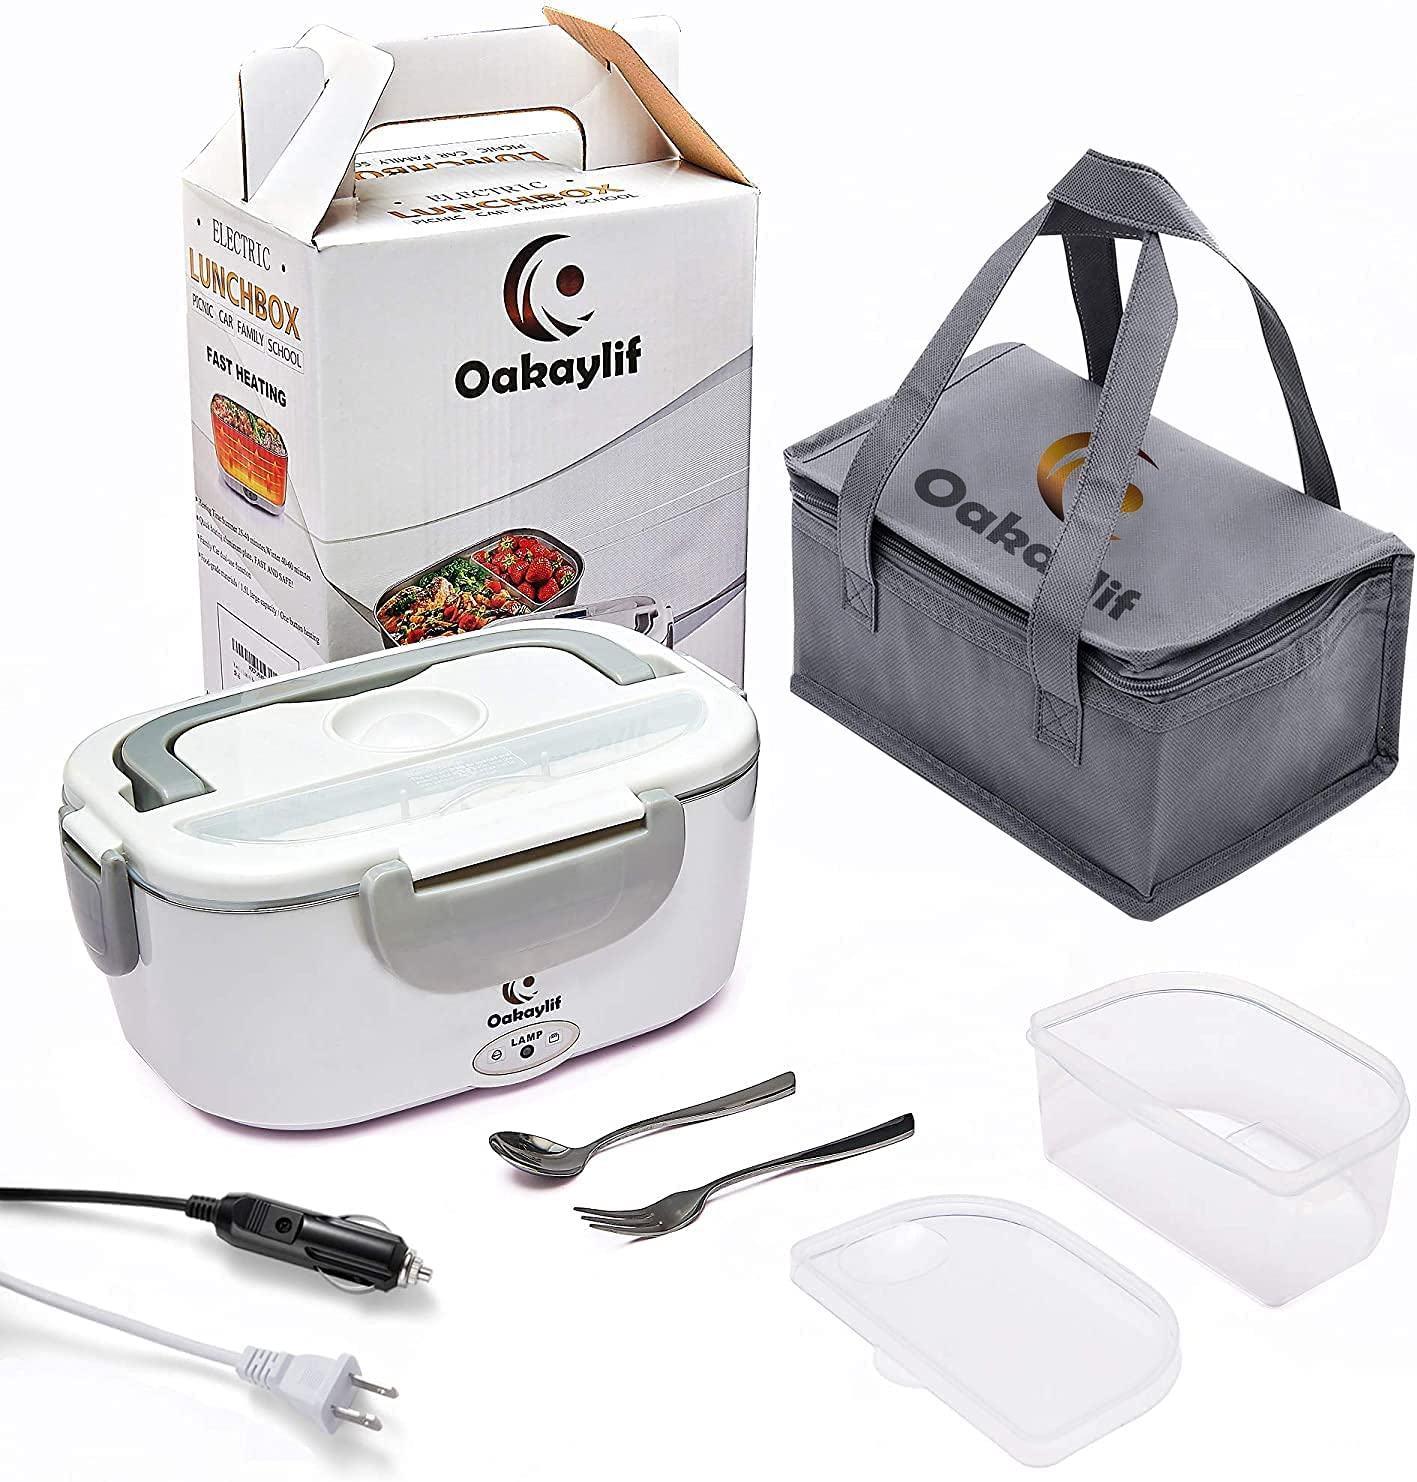 Electric Lunch Box Food Warmer,Oakaylif 2 IN 1 Portable Heated Lunch Boxes for Truck/Home/Office 110V&12V with 2 Compartments,1.5L 304 Stainless Steel Container,SS Fork & Spoon and Insulation Bag